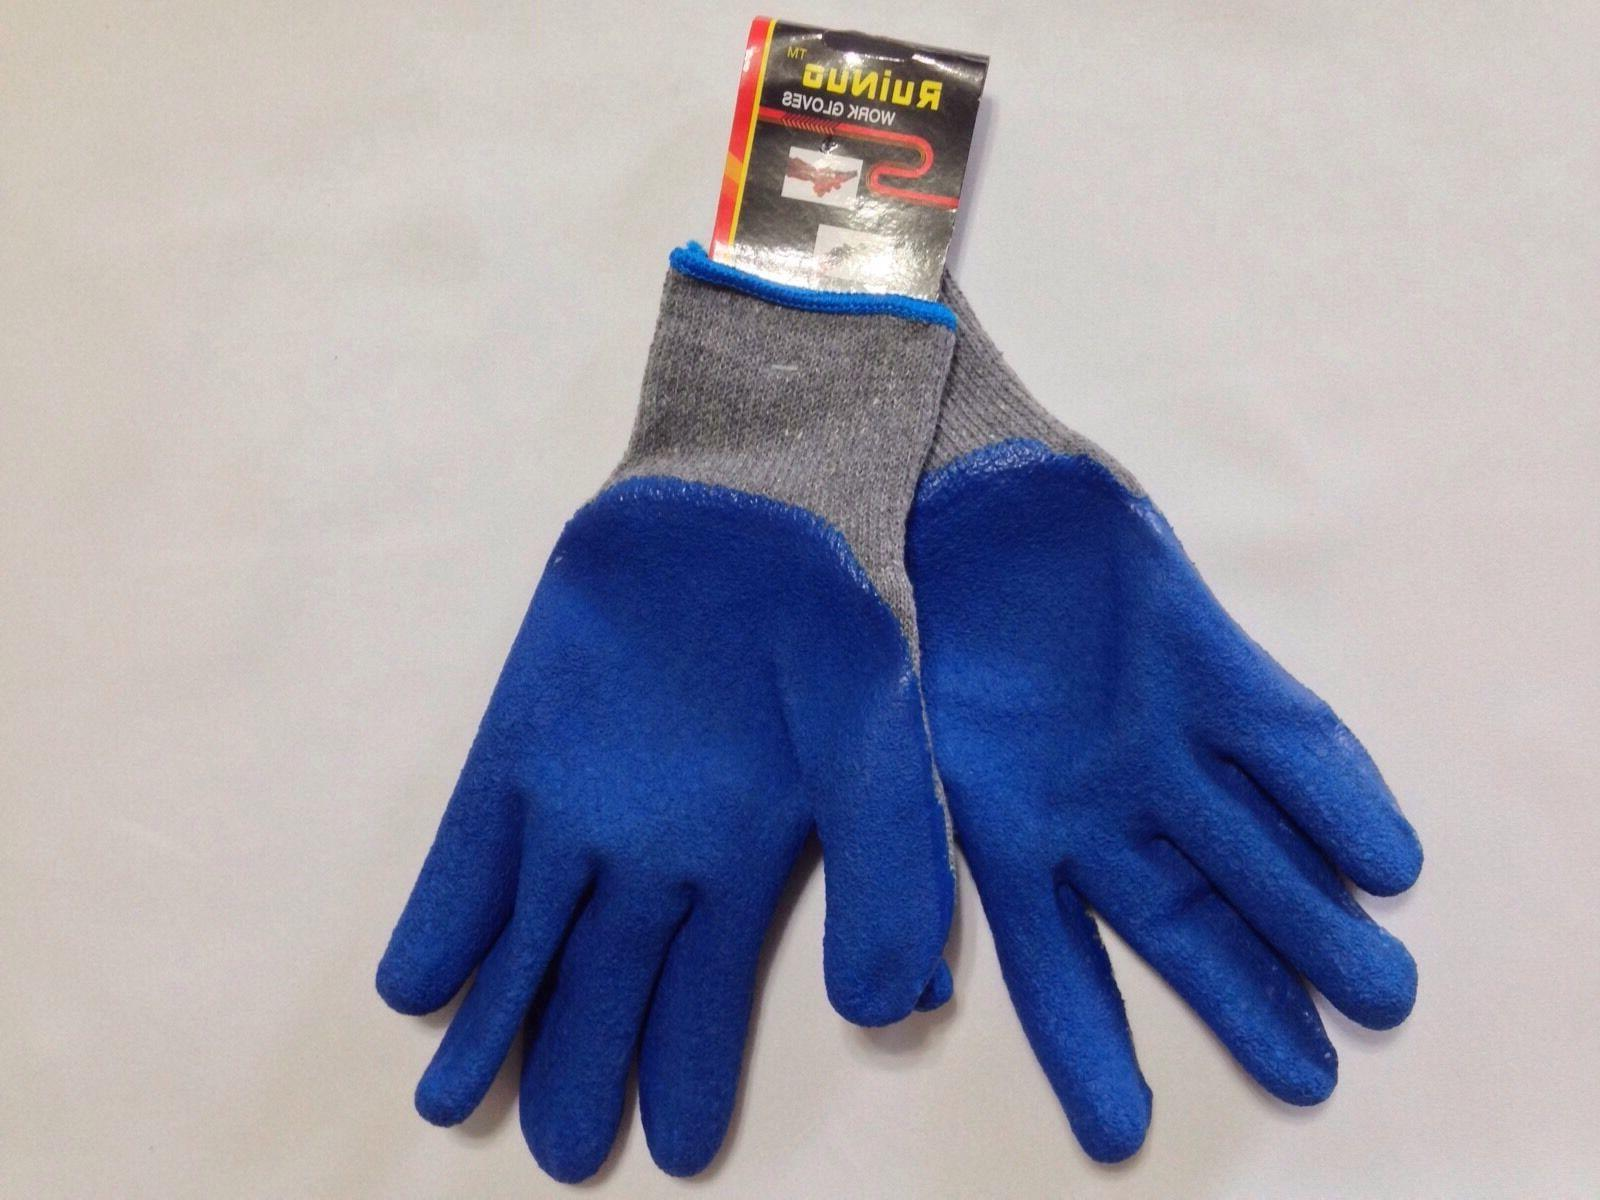 12 Pack, Rubber Coated Cotton Gloves, Blue Gray Color